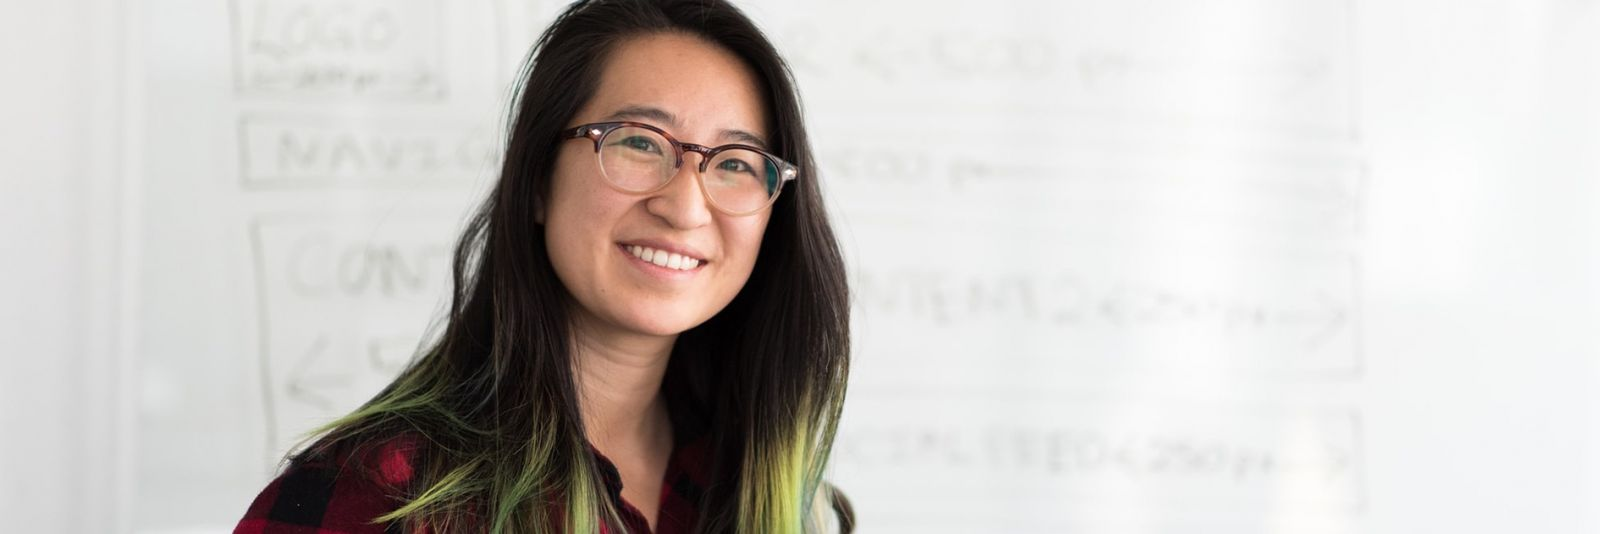 Smiling woman with glasses in front of a whiteboard